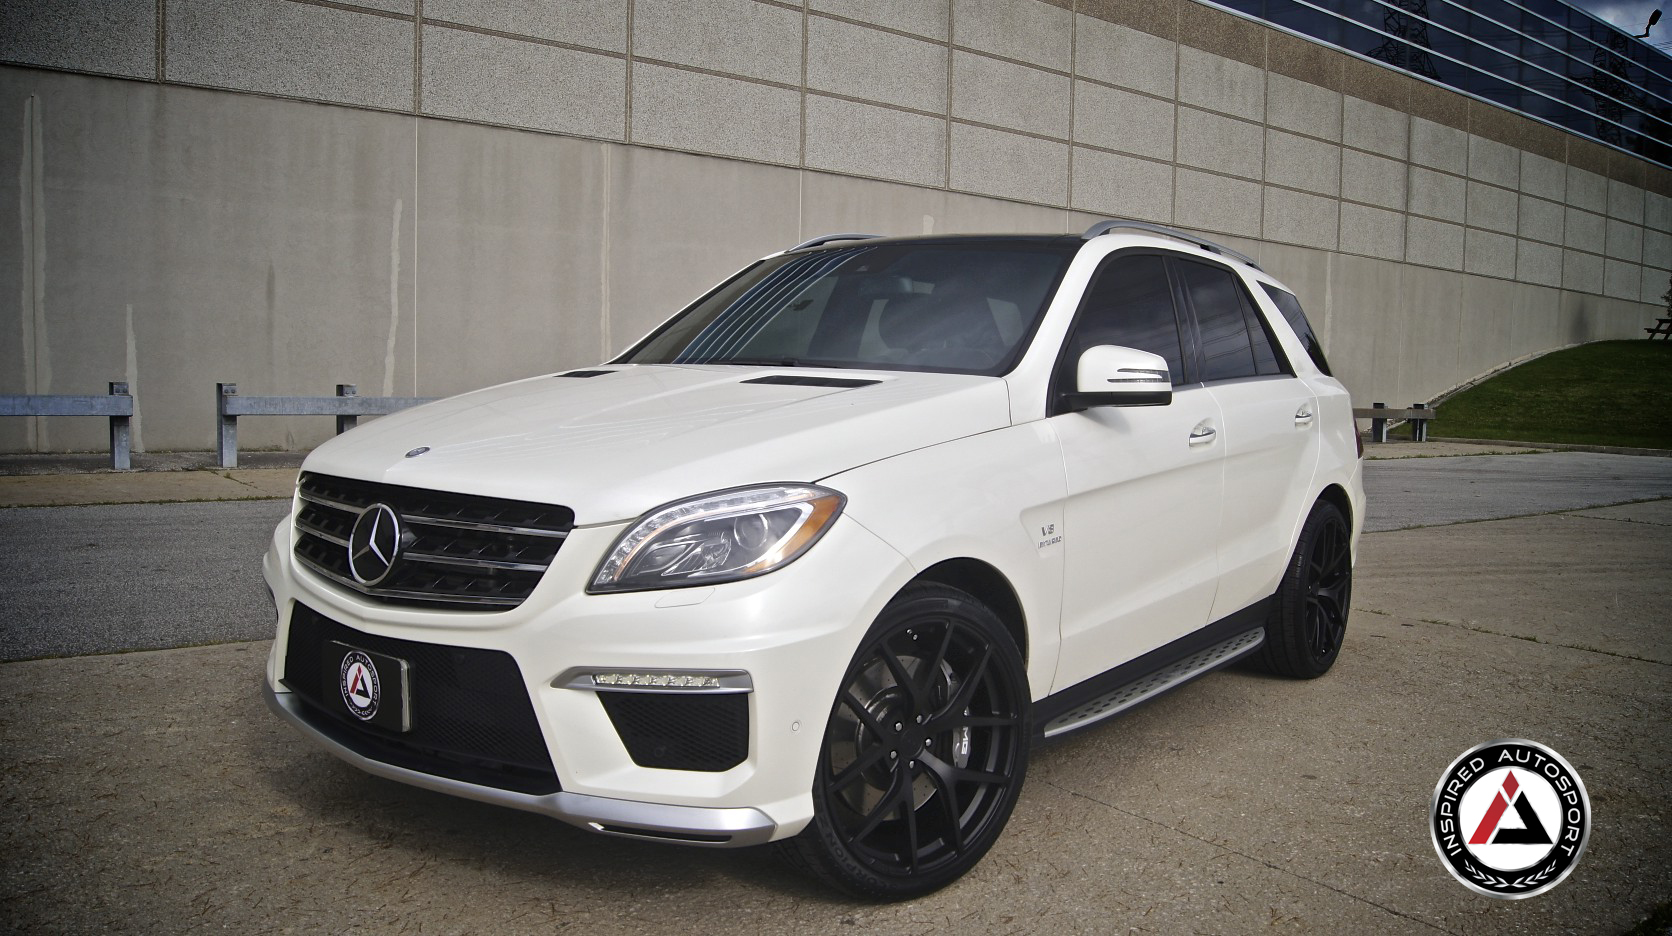 Mercedes Benz Ml 63 Amg By Inspired Autosport